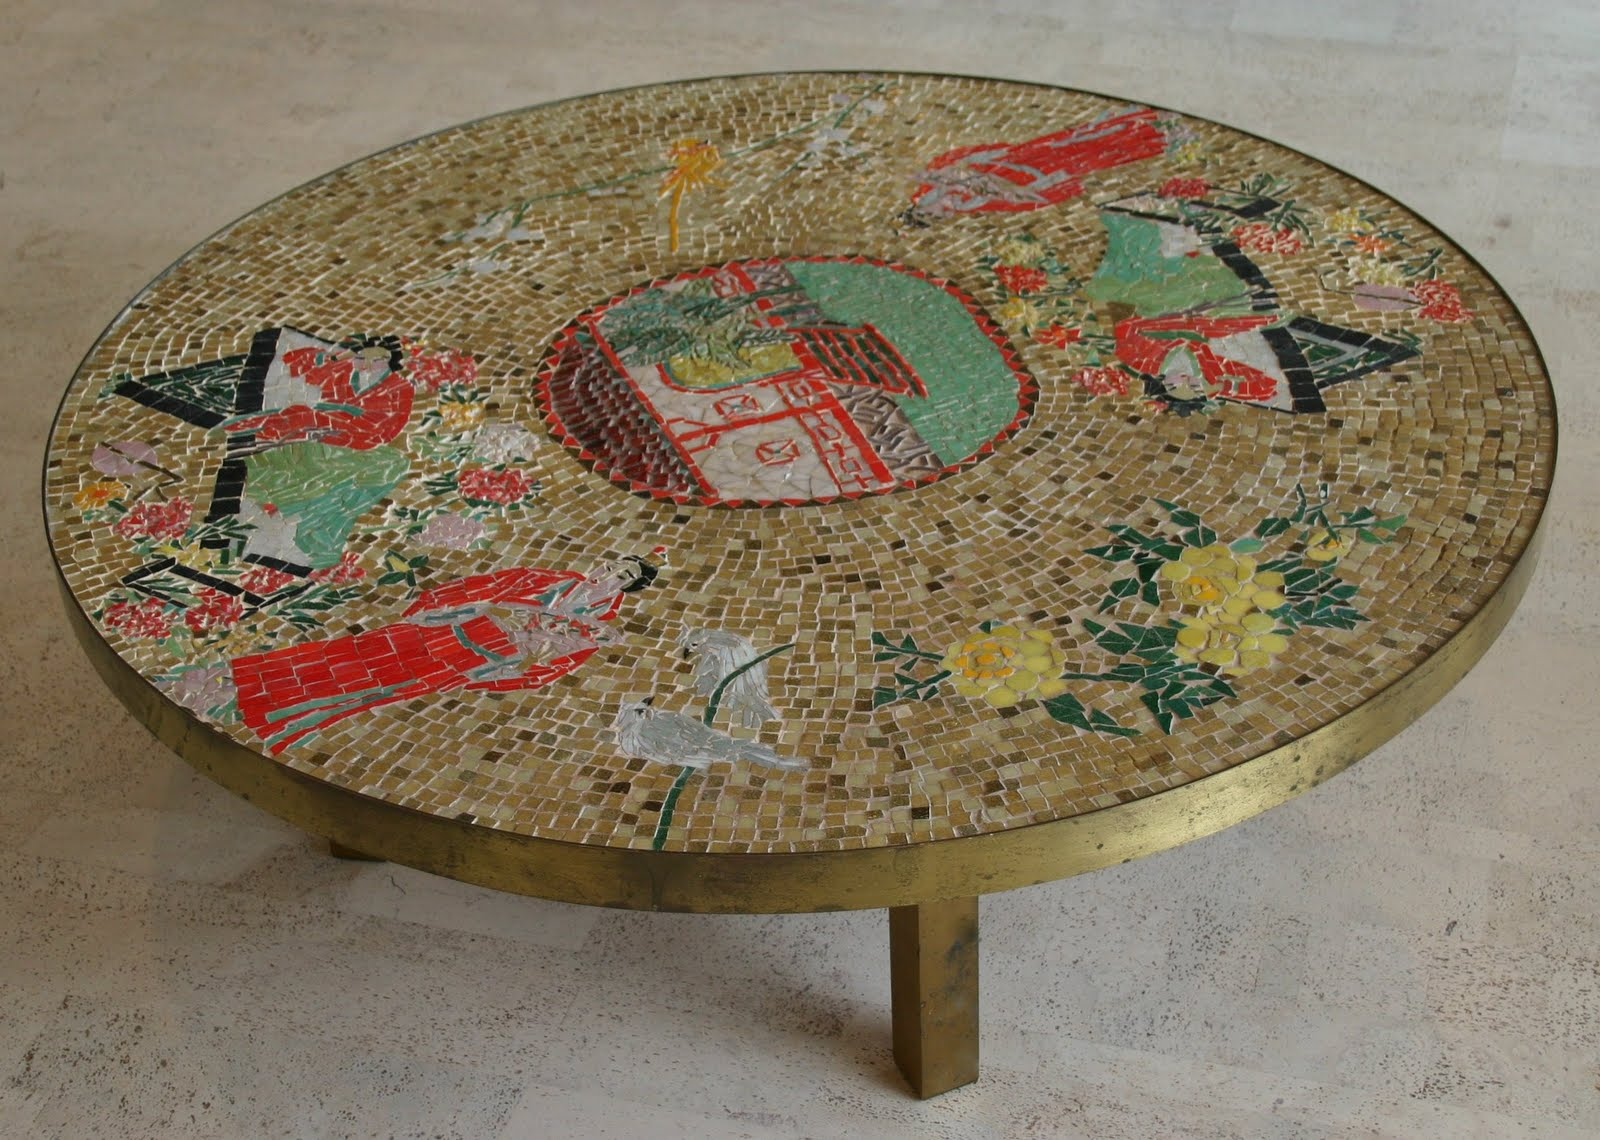 Unique VINTAGE MOSAIC COFFEE TABLE NOTHING ORDINARY ABOUT IT